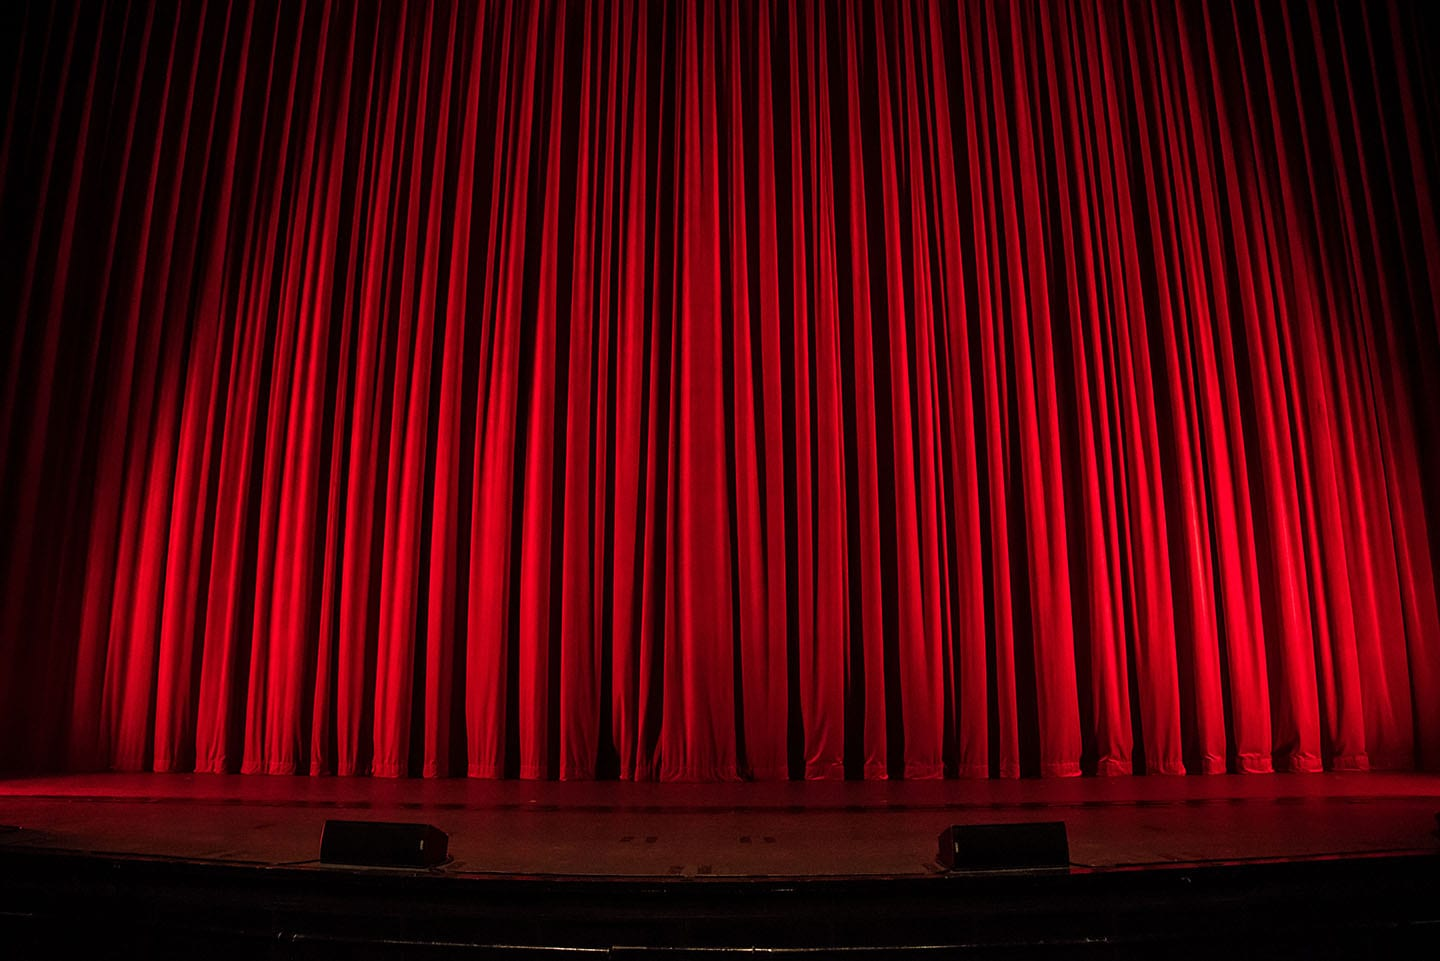 Picture of a red curtain